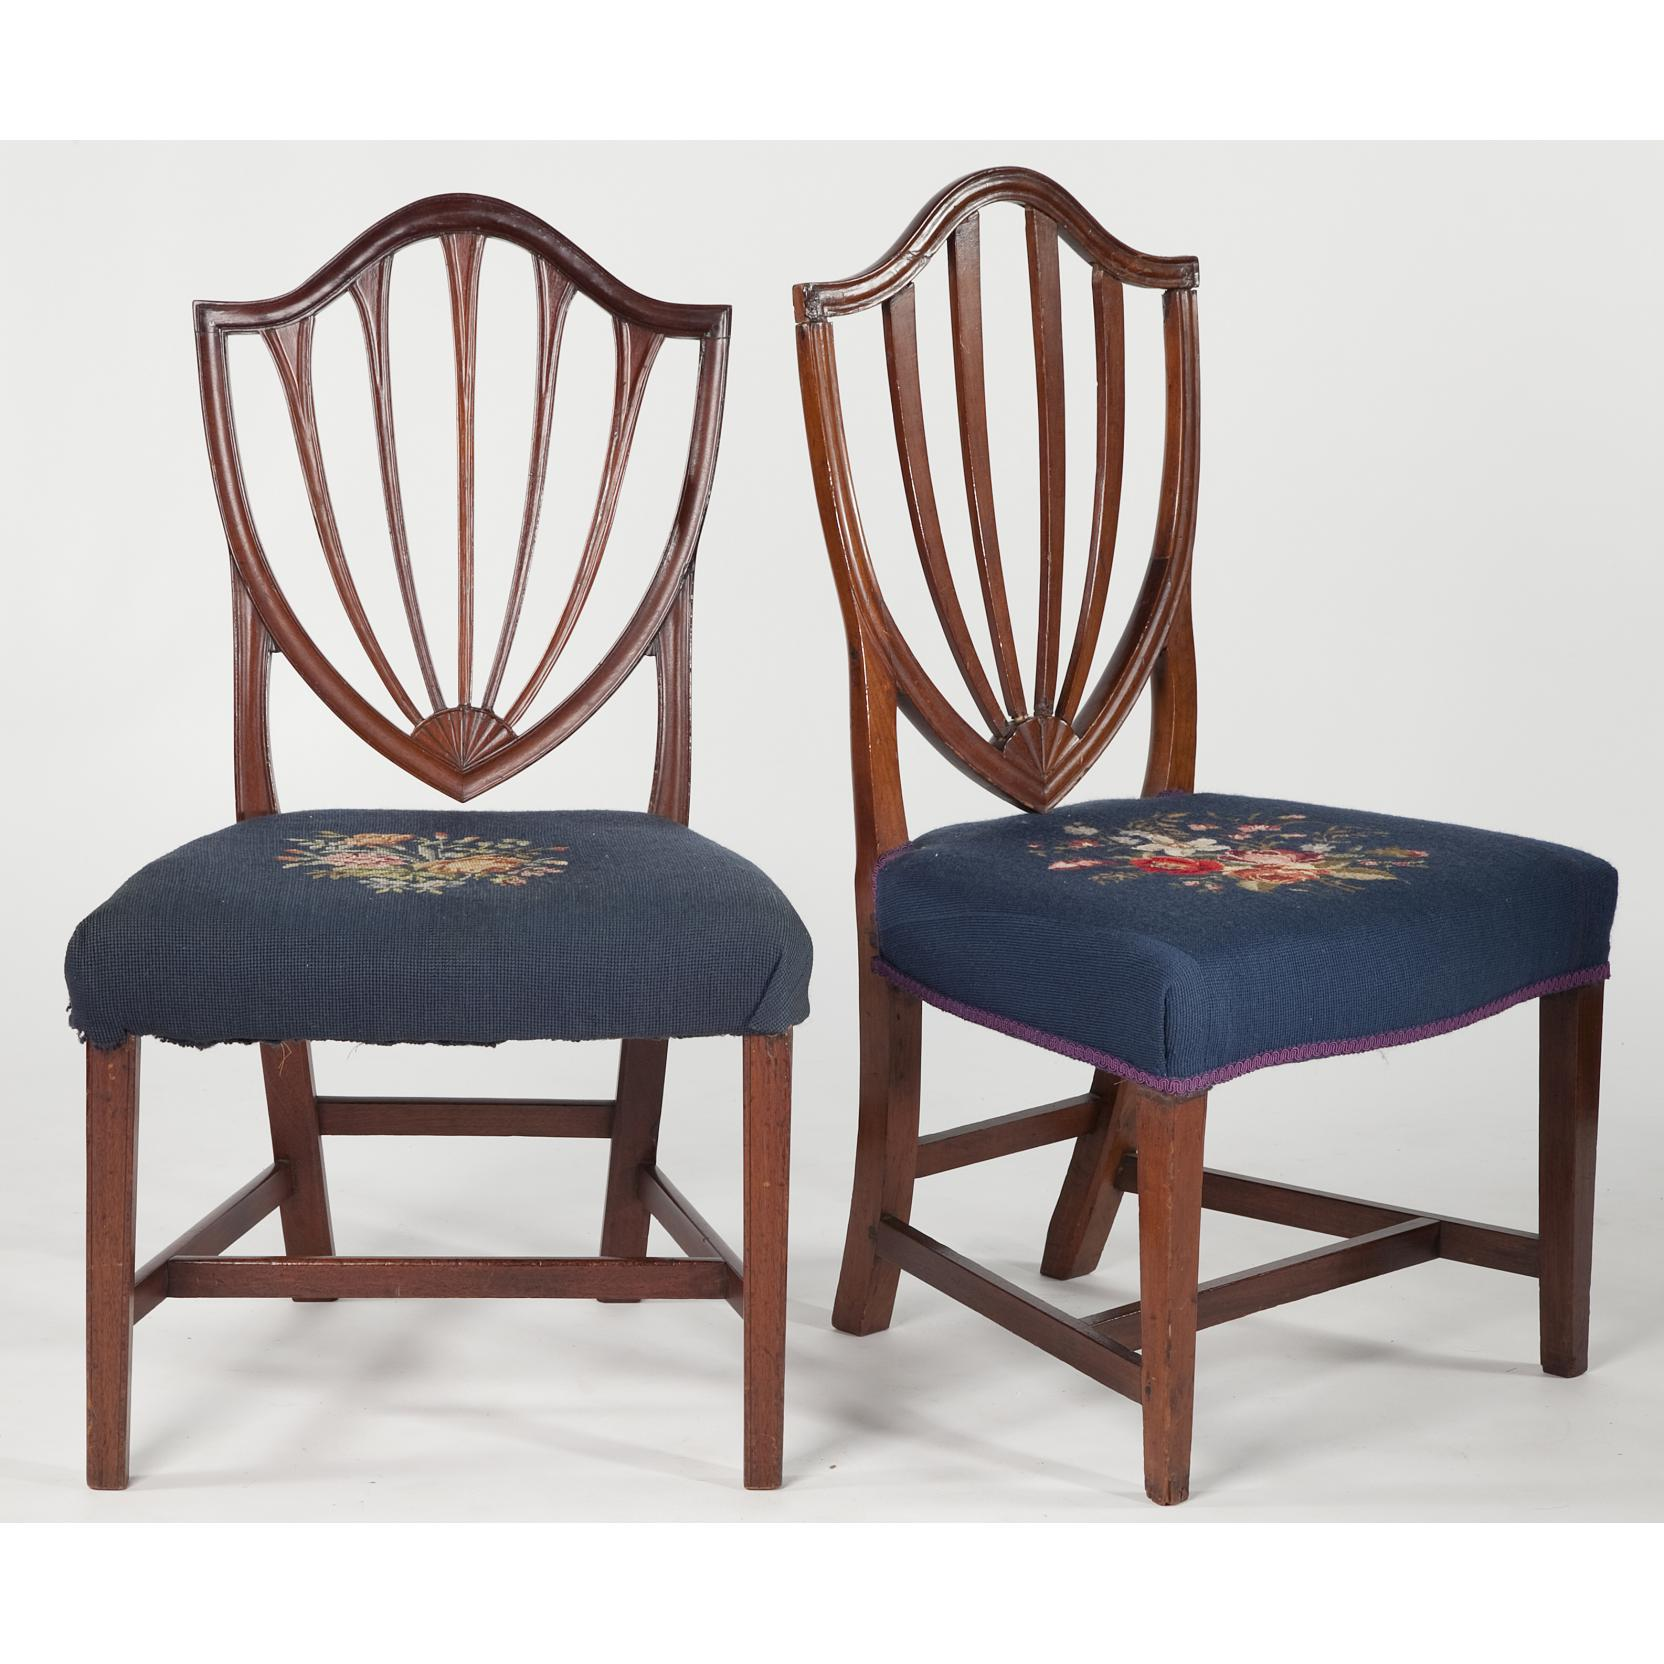 two-similar-american-hepplewhite-side-chairs